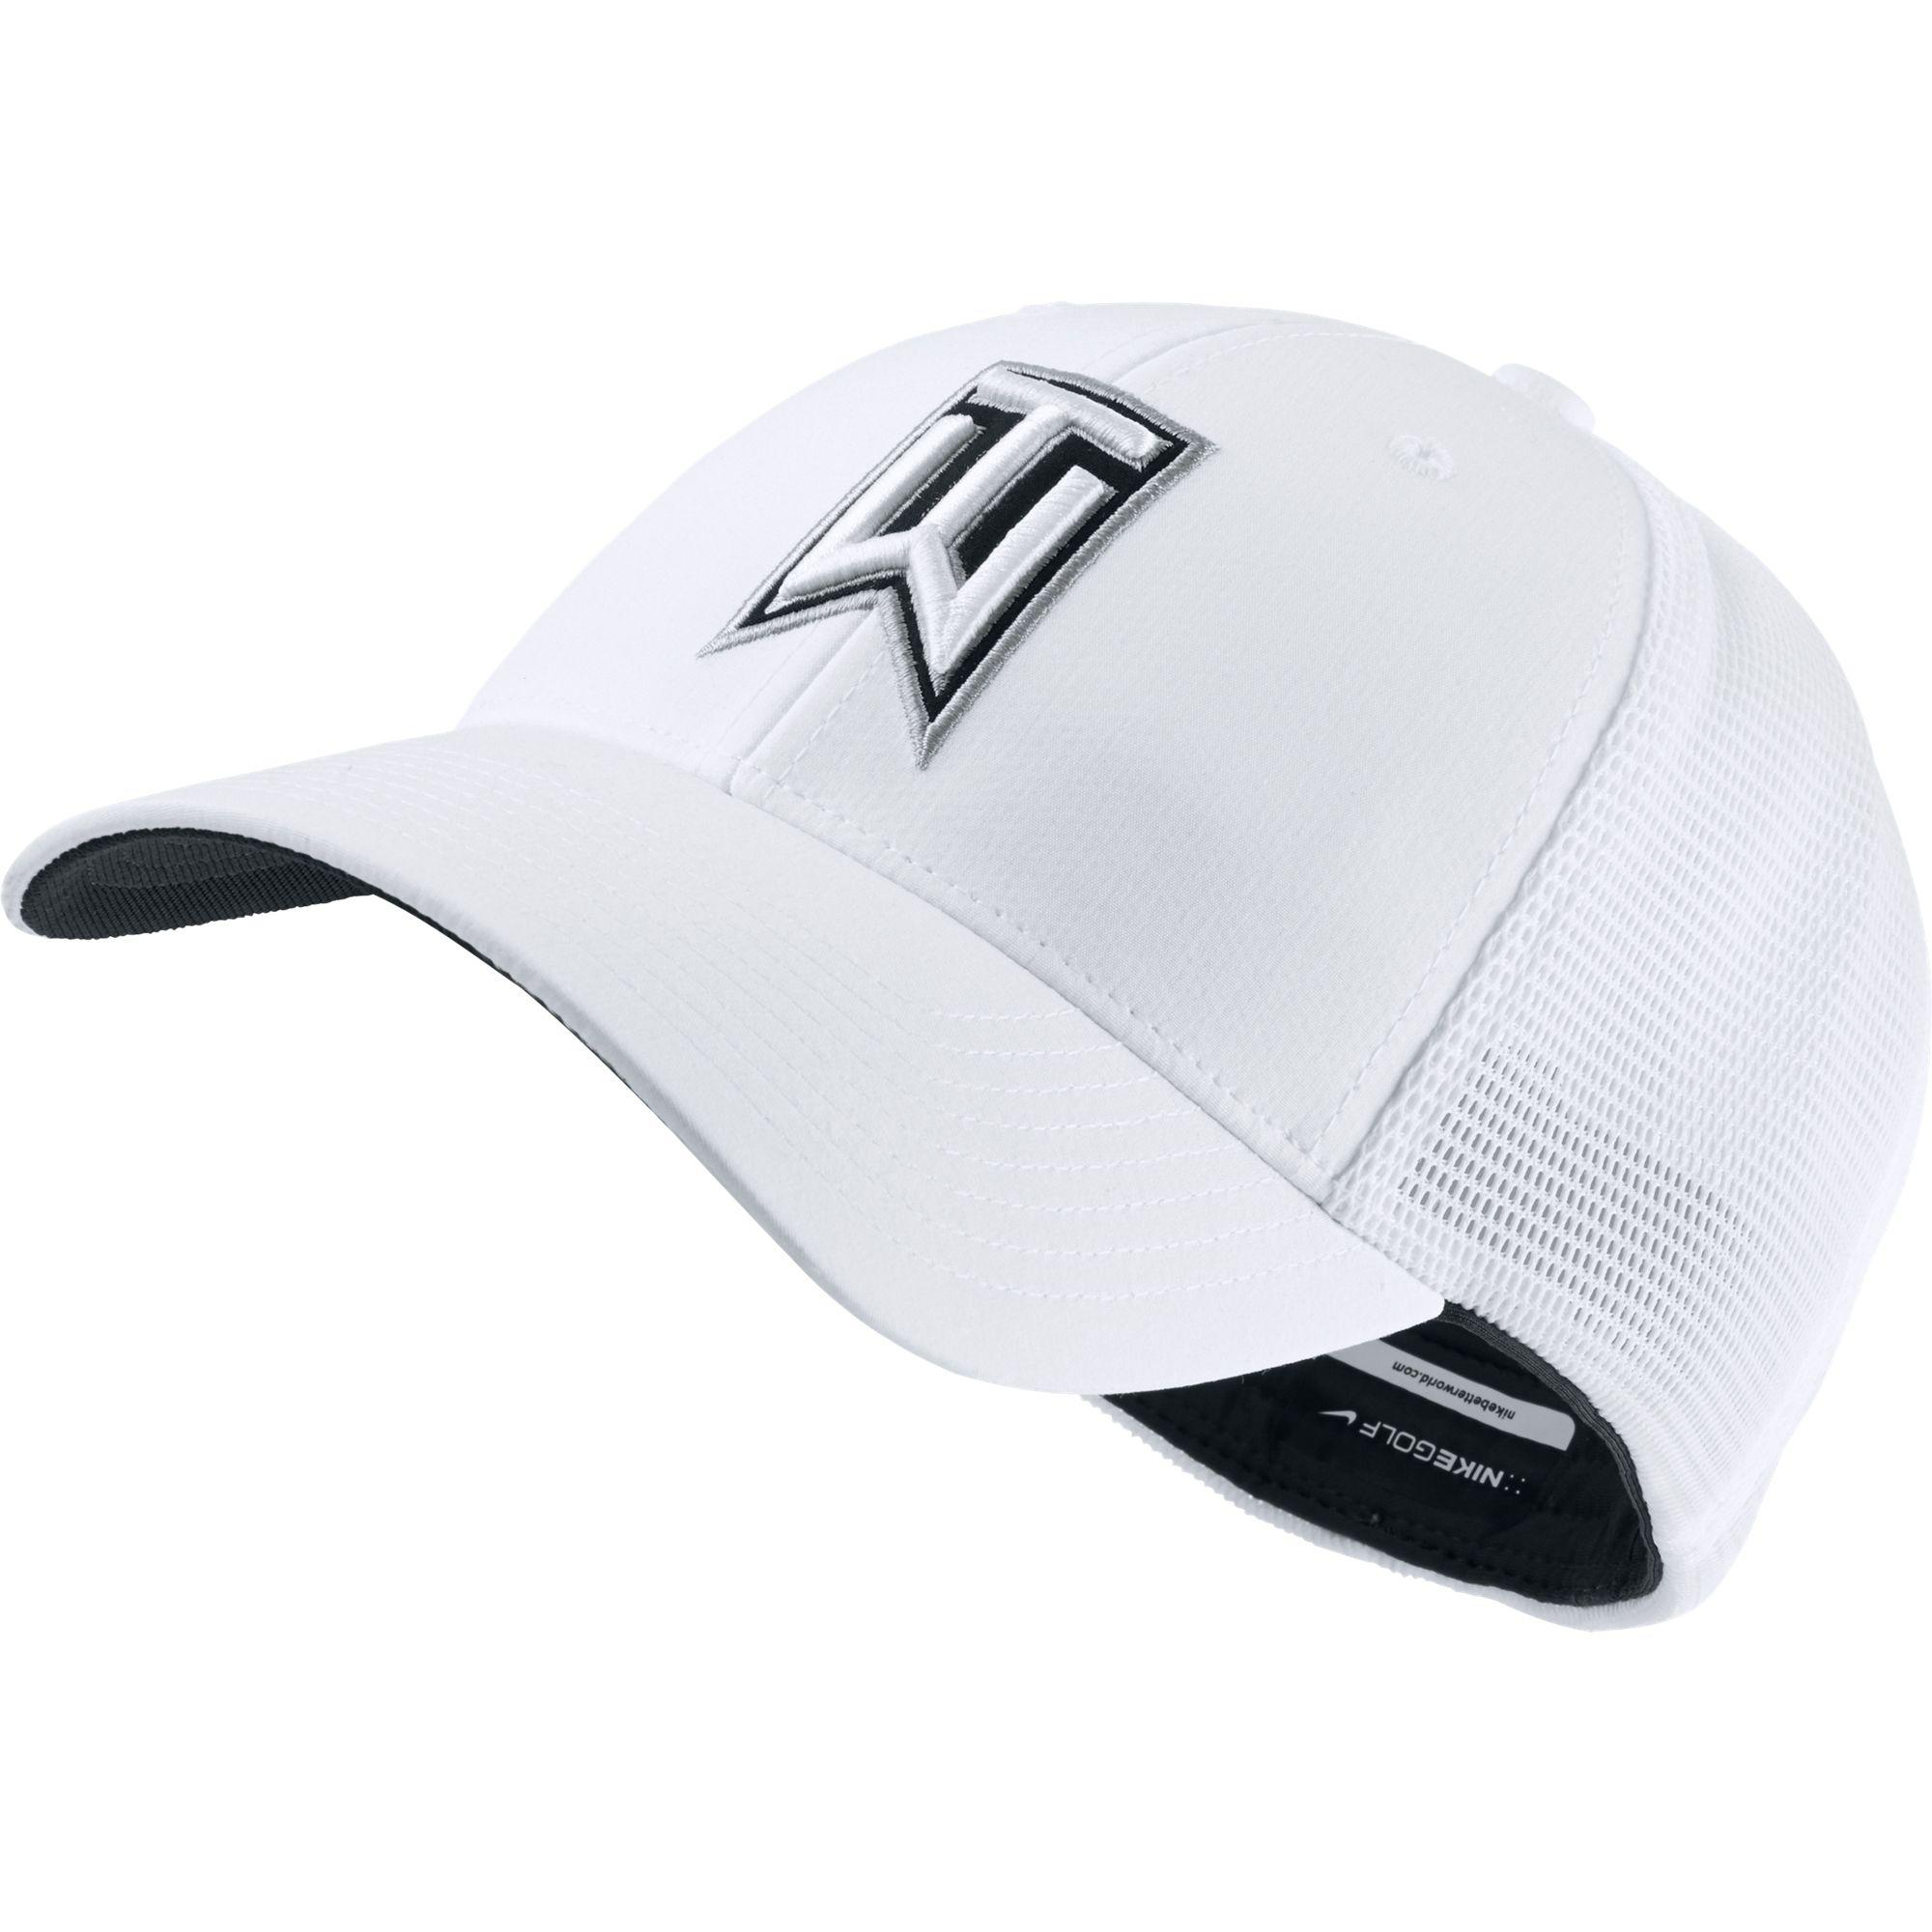 Lyst - Nike Tiger Woods Legacy91 Tour Mesh Golf Hat in White for Men 091622182a16